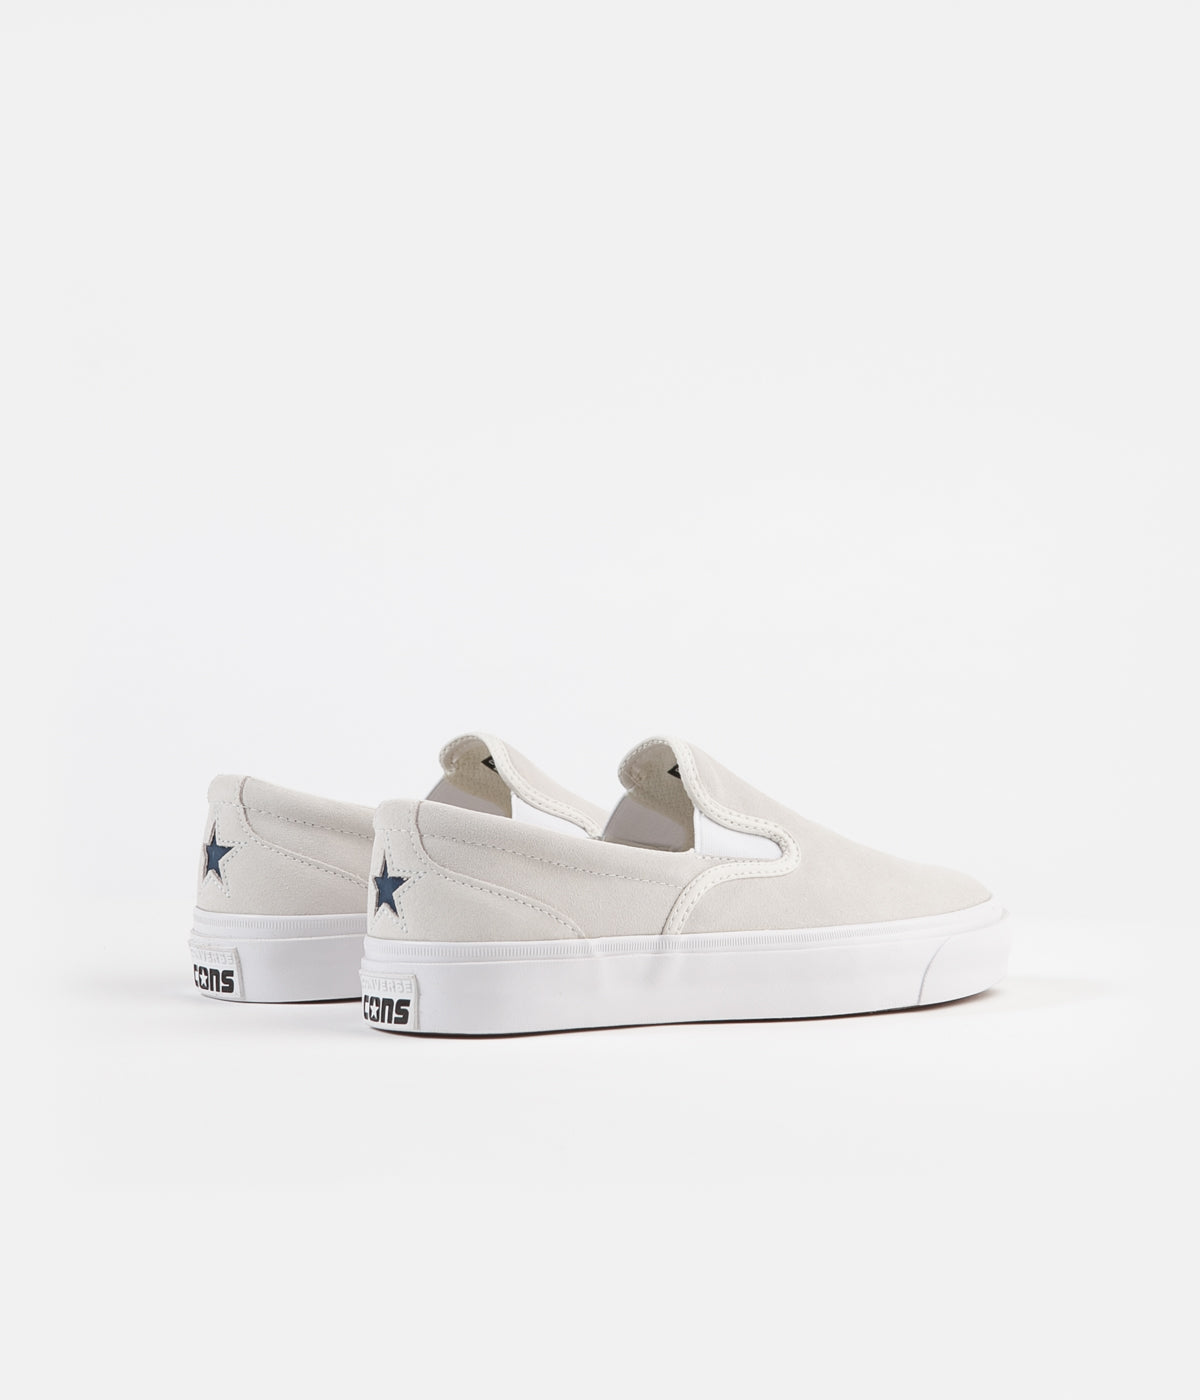 Converse One Star CC Slip On Shoes - Egret / Navy / White